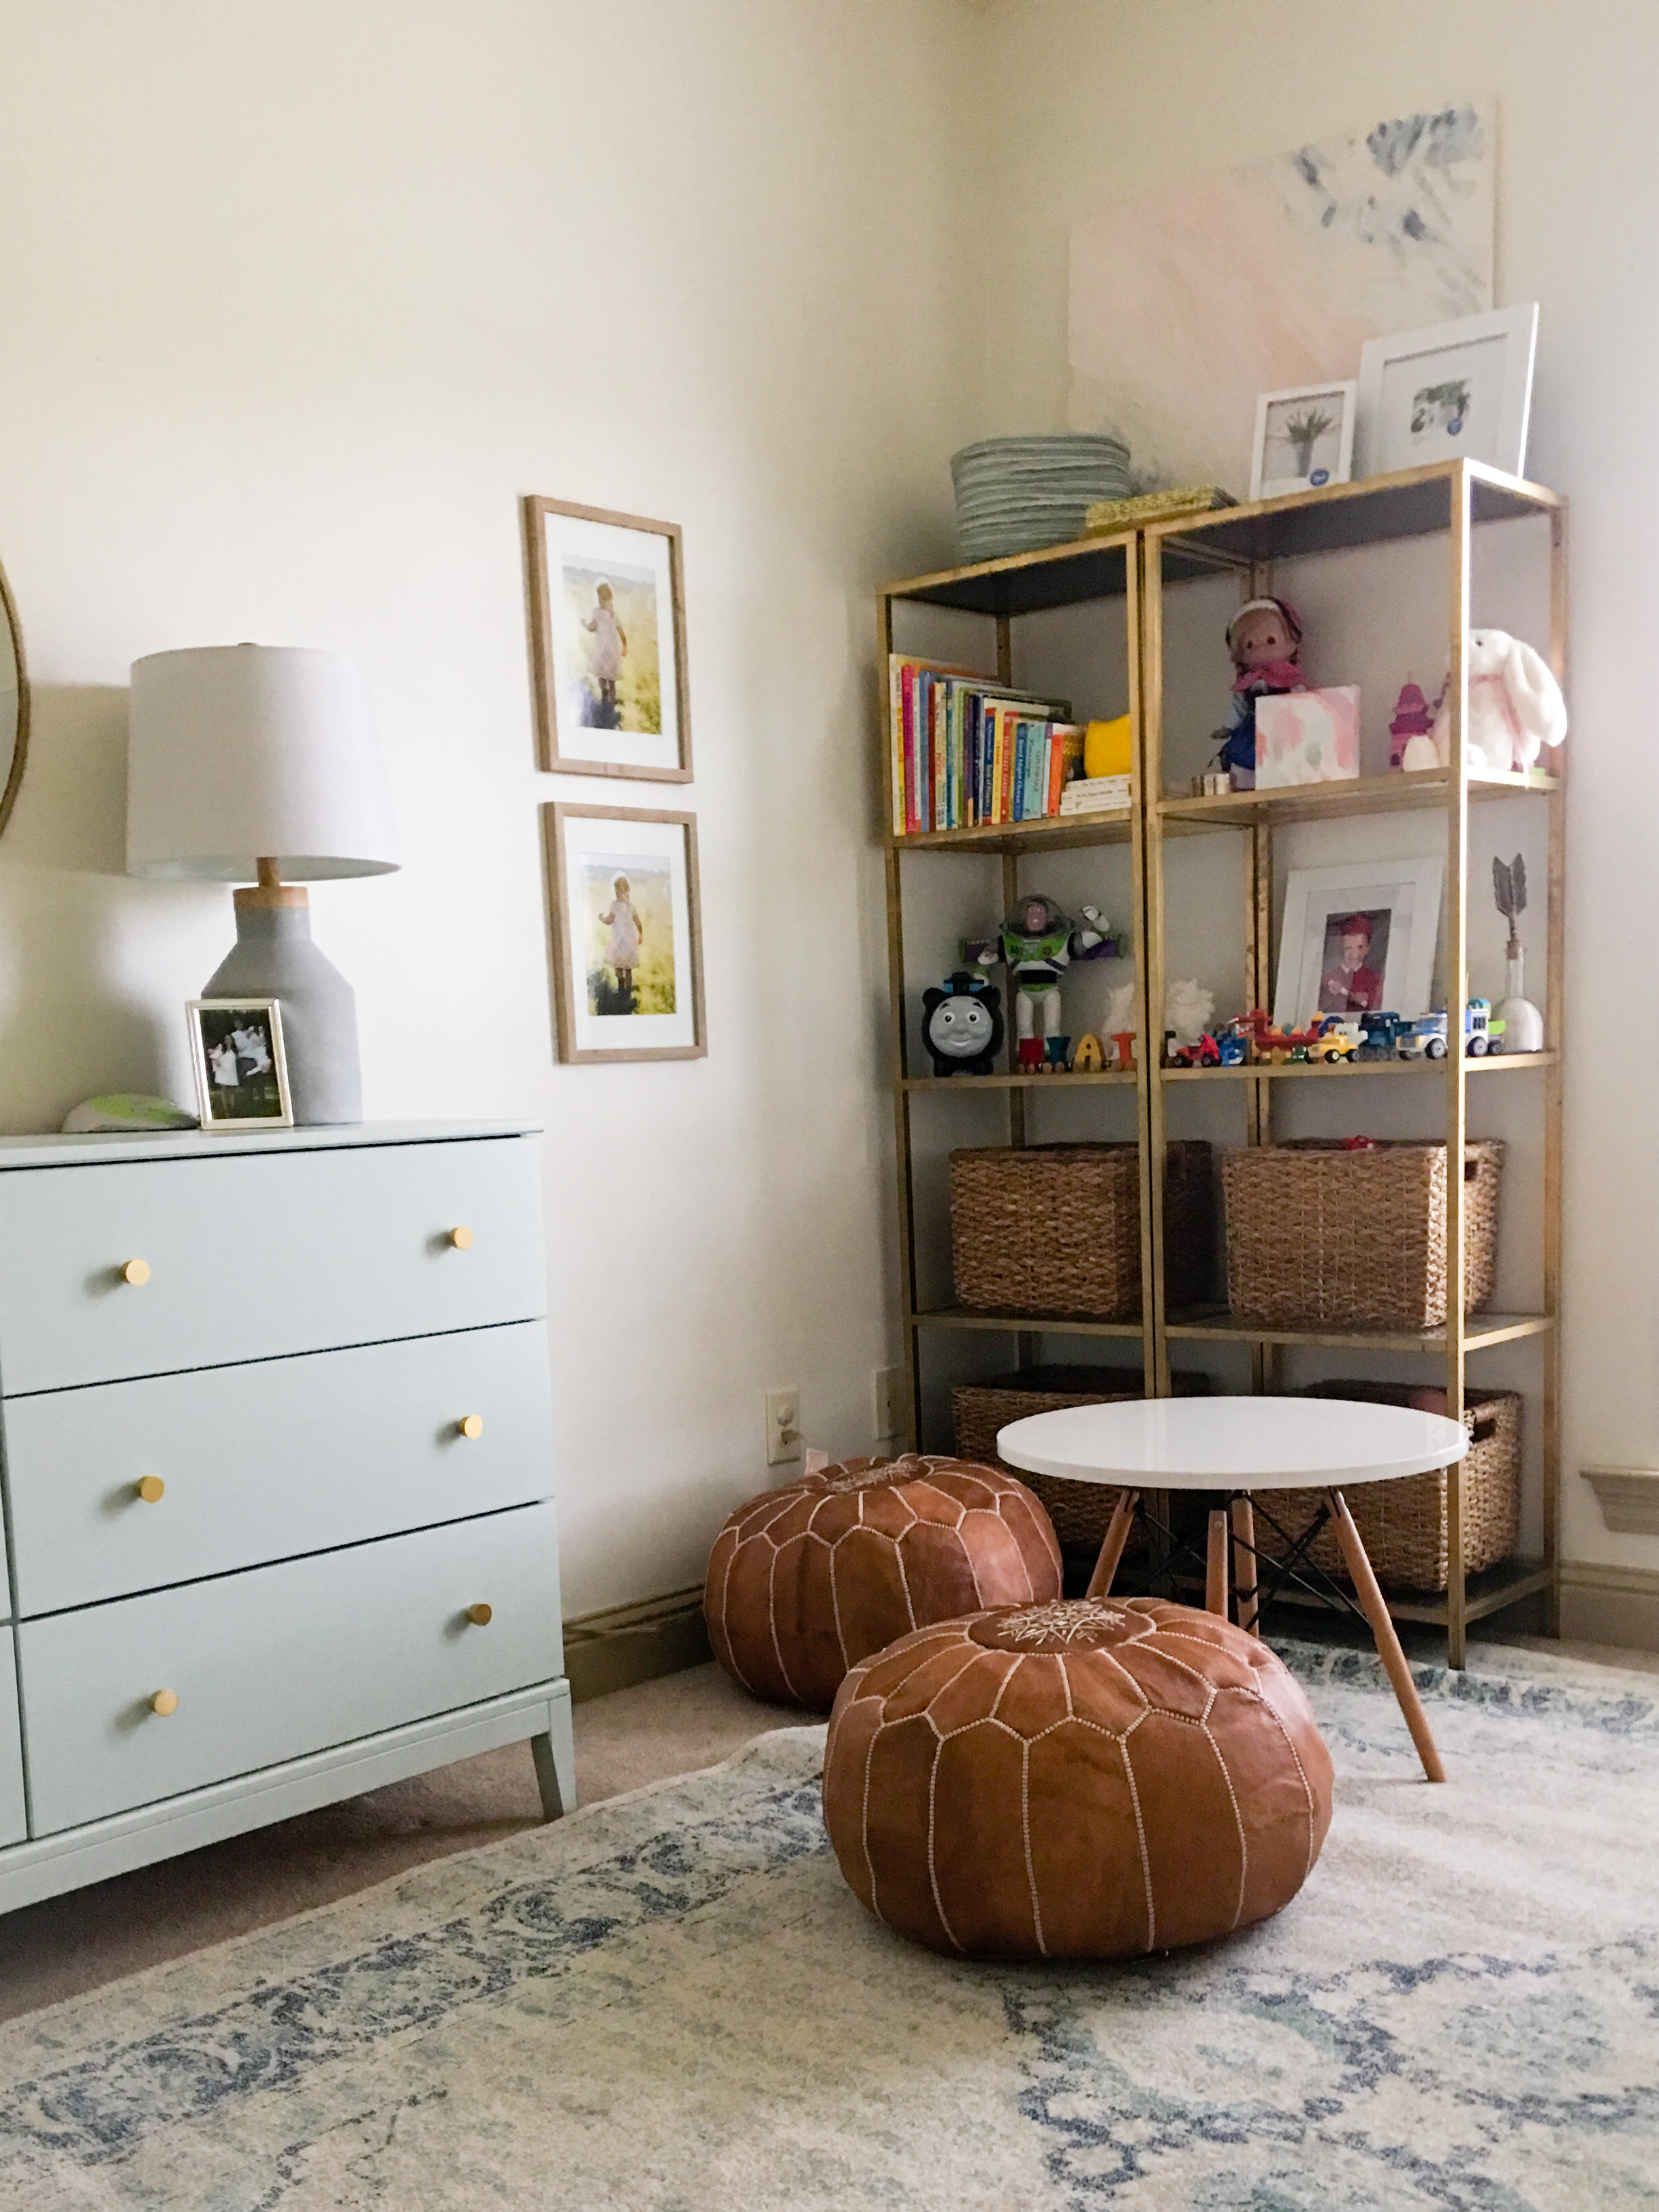 AFTER: shared kids' room play area & additional storage